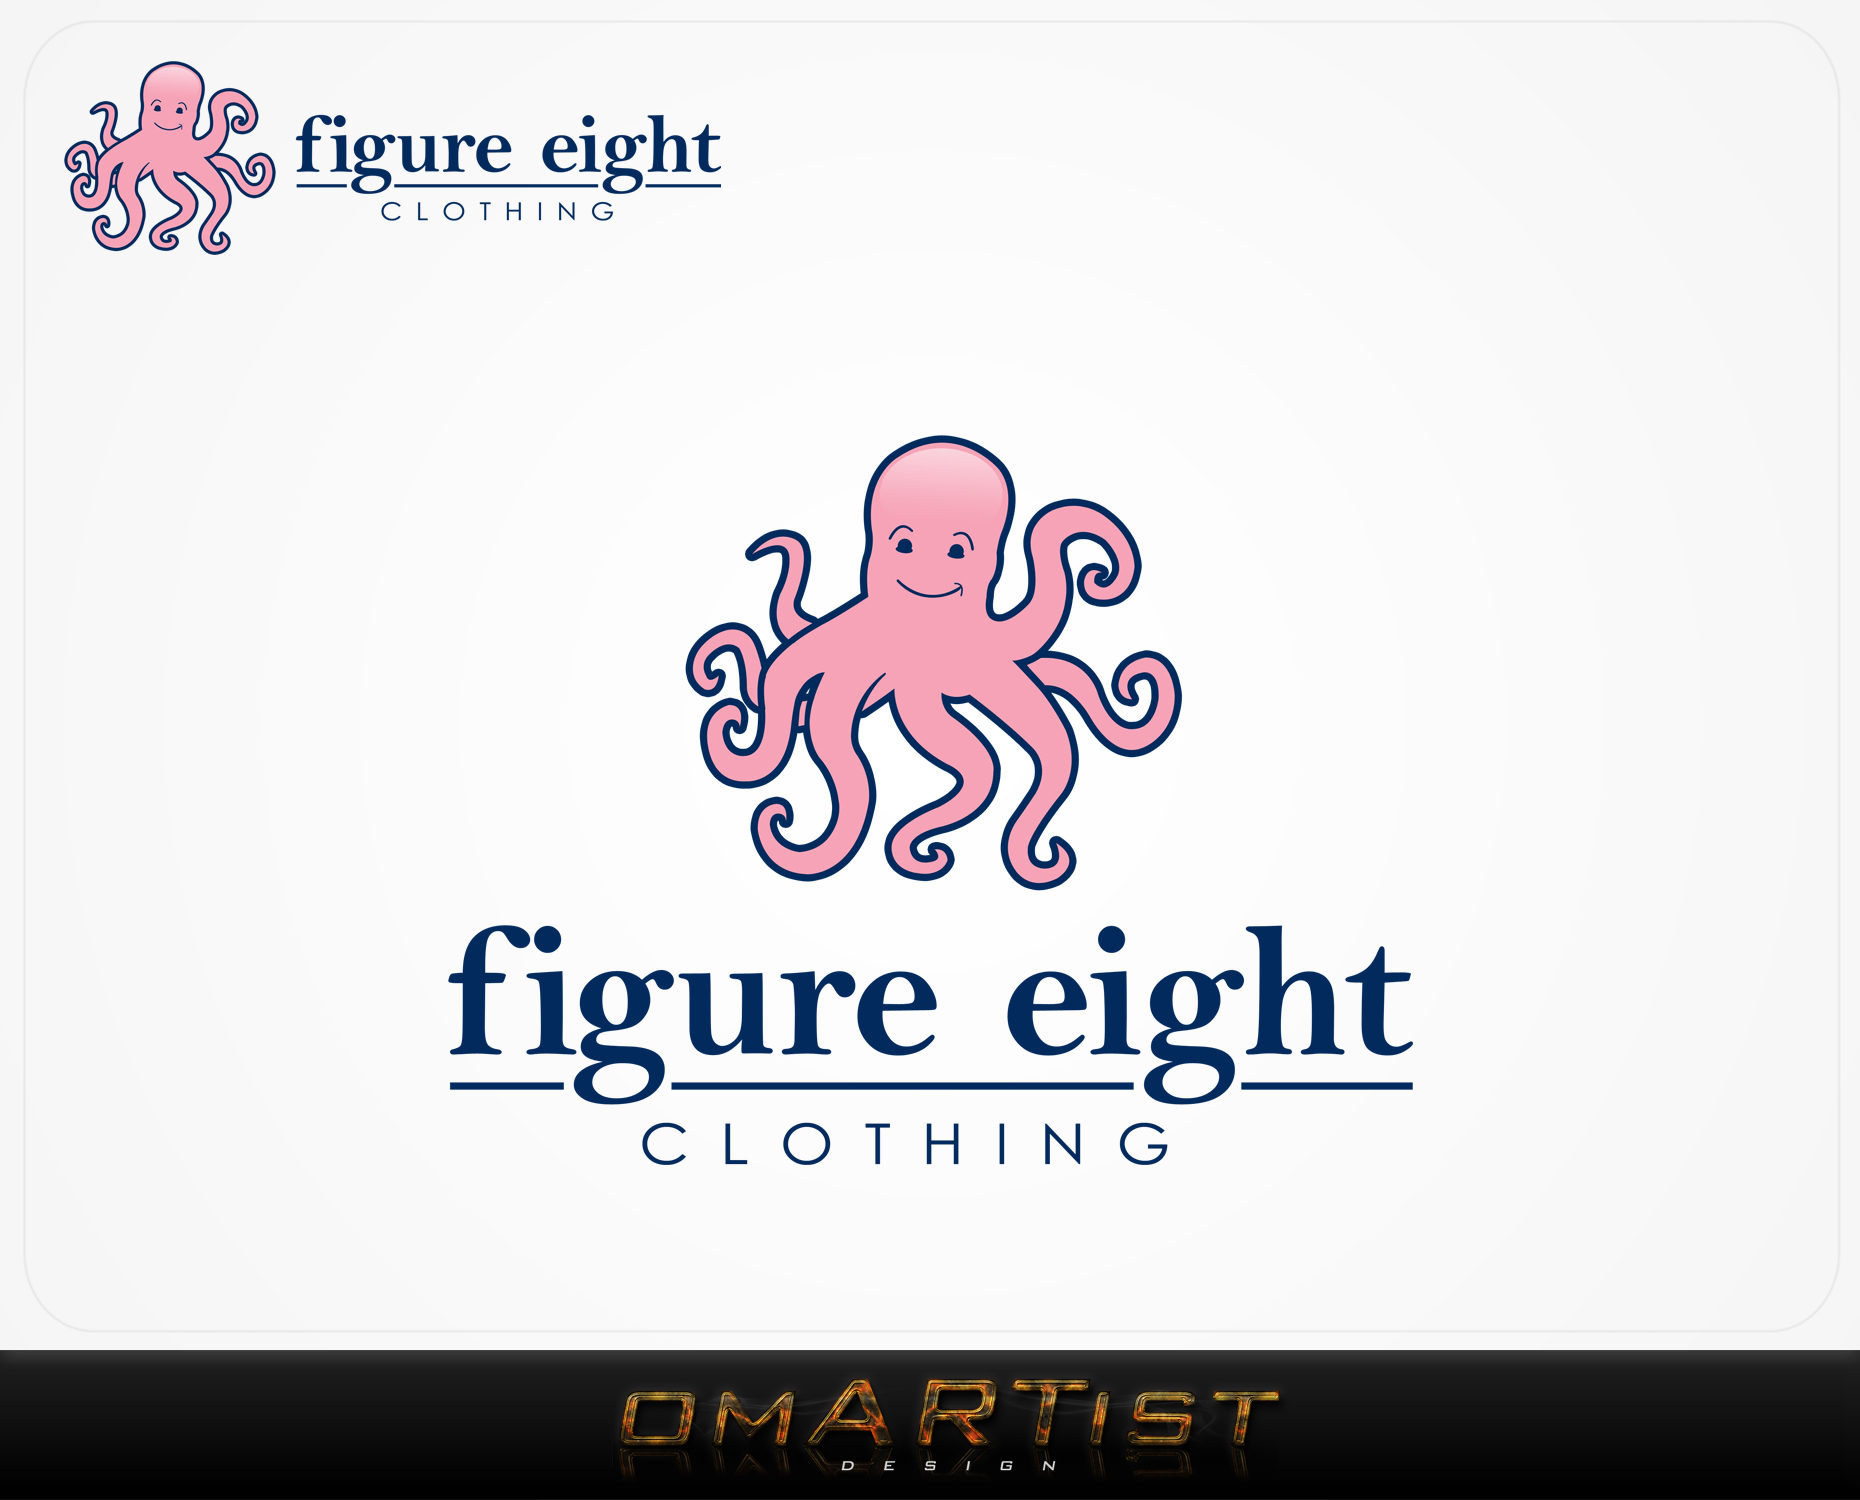 Logo Design by omARTist - Entry No. 83 in the Logo Design Contest Artistic Logo Design for Figure Eight Clothing.